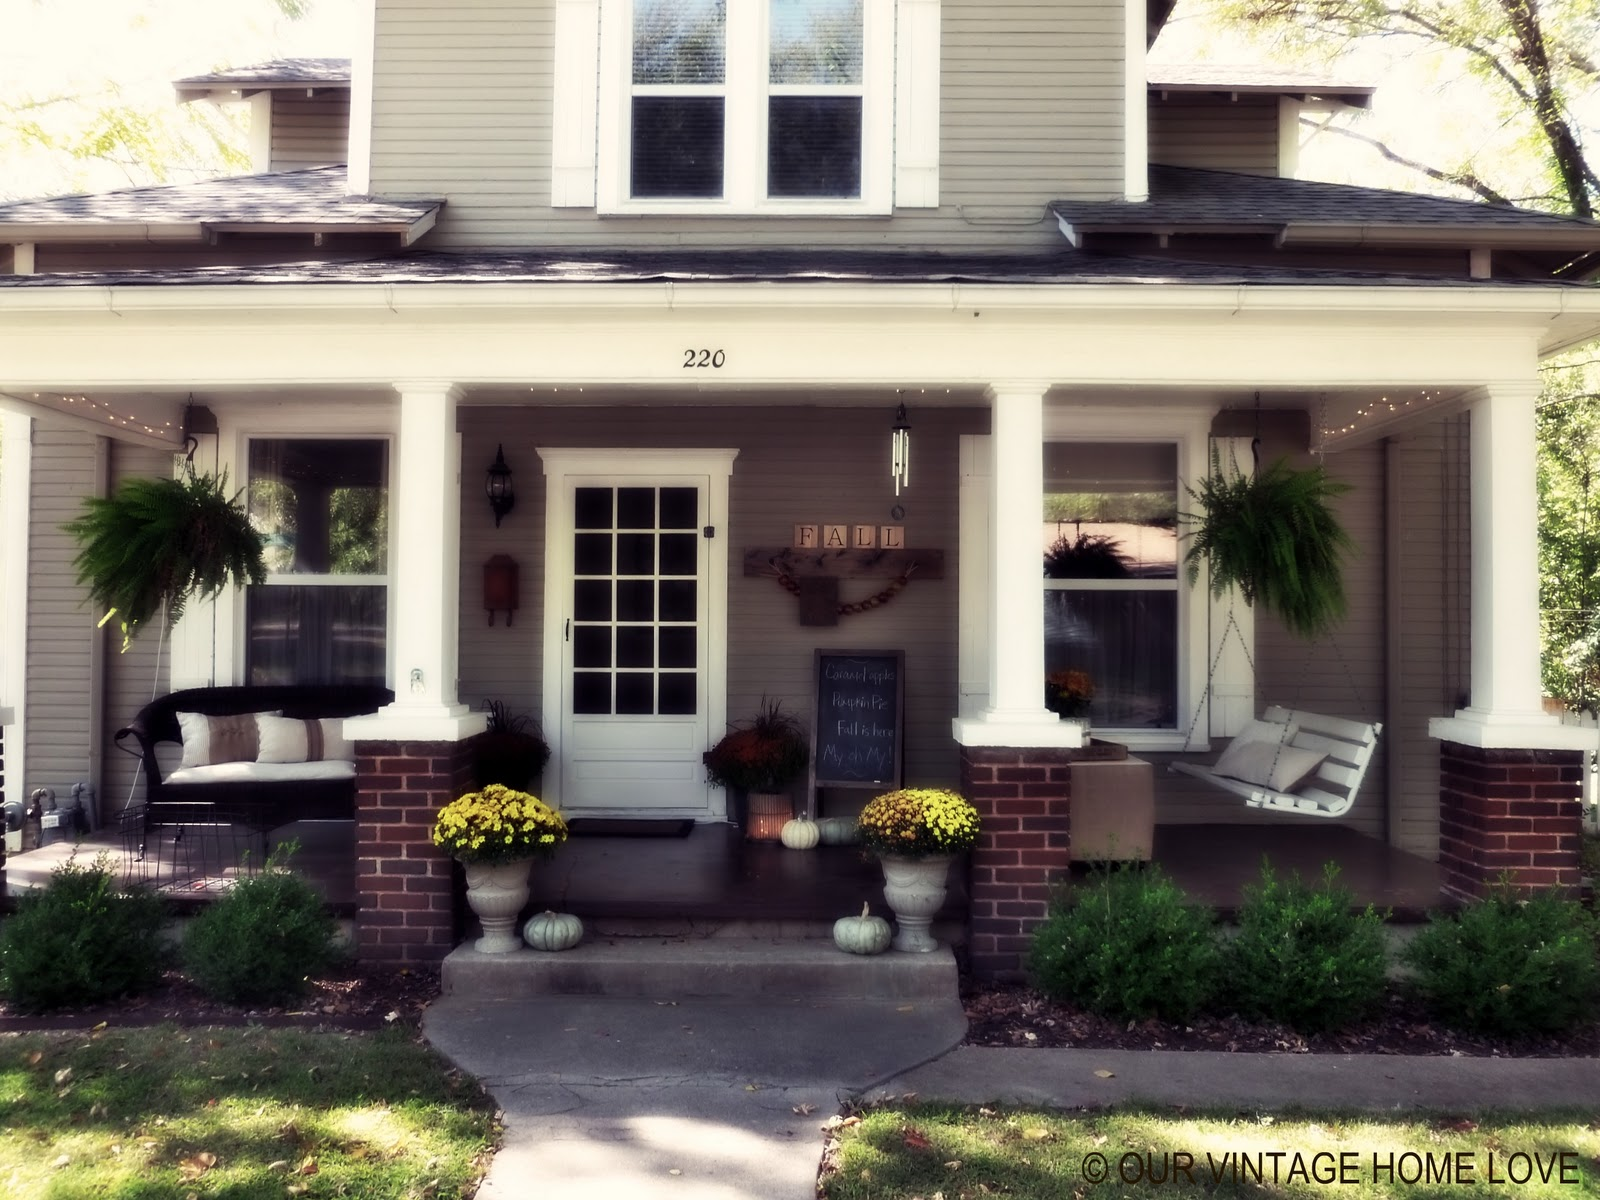 Vintage home love fall porch ideas for How long does it take to build a new house